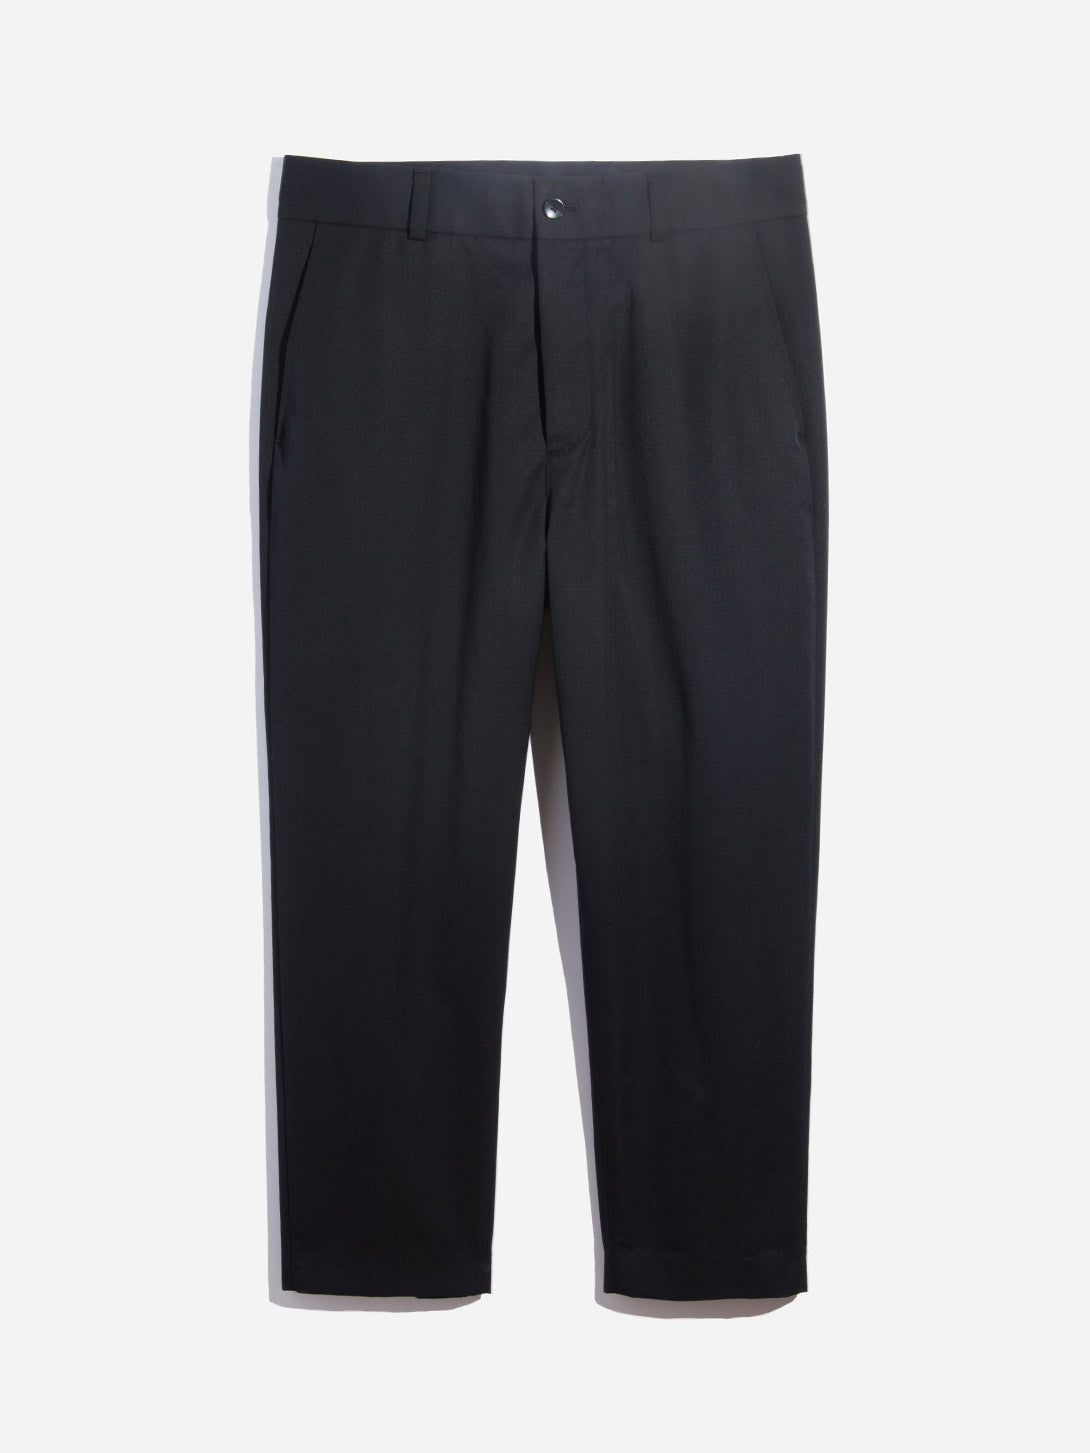 JET BLACK mens trousers nigel trouser ons clothing